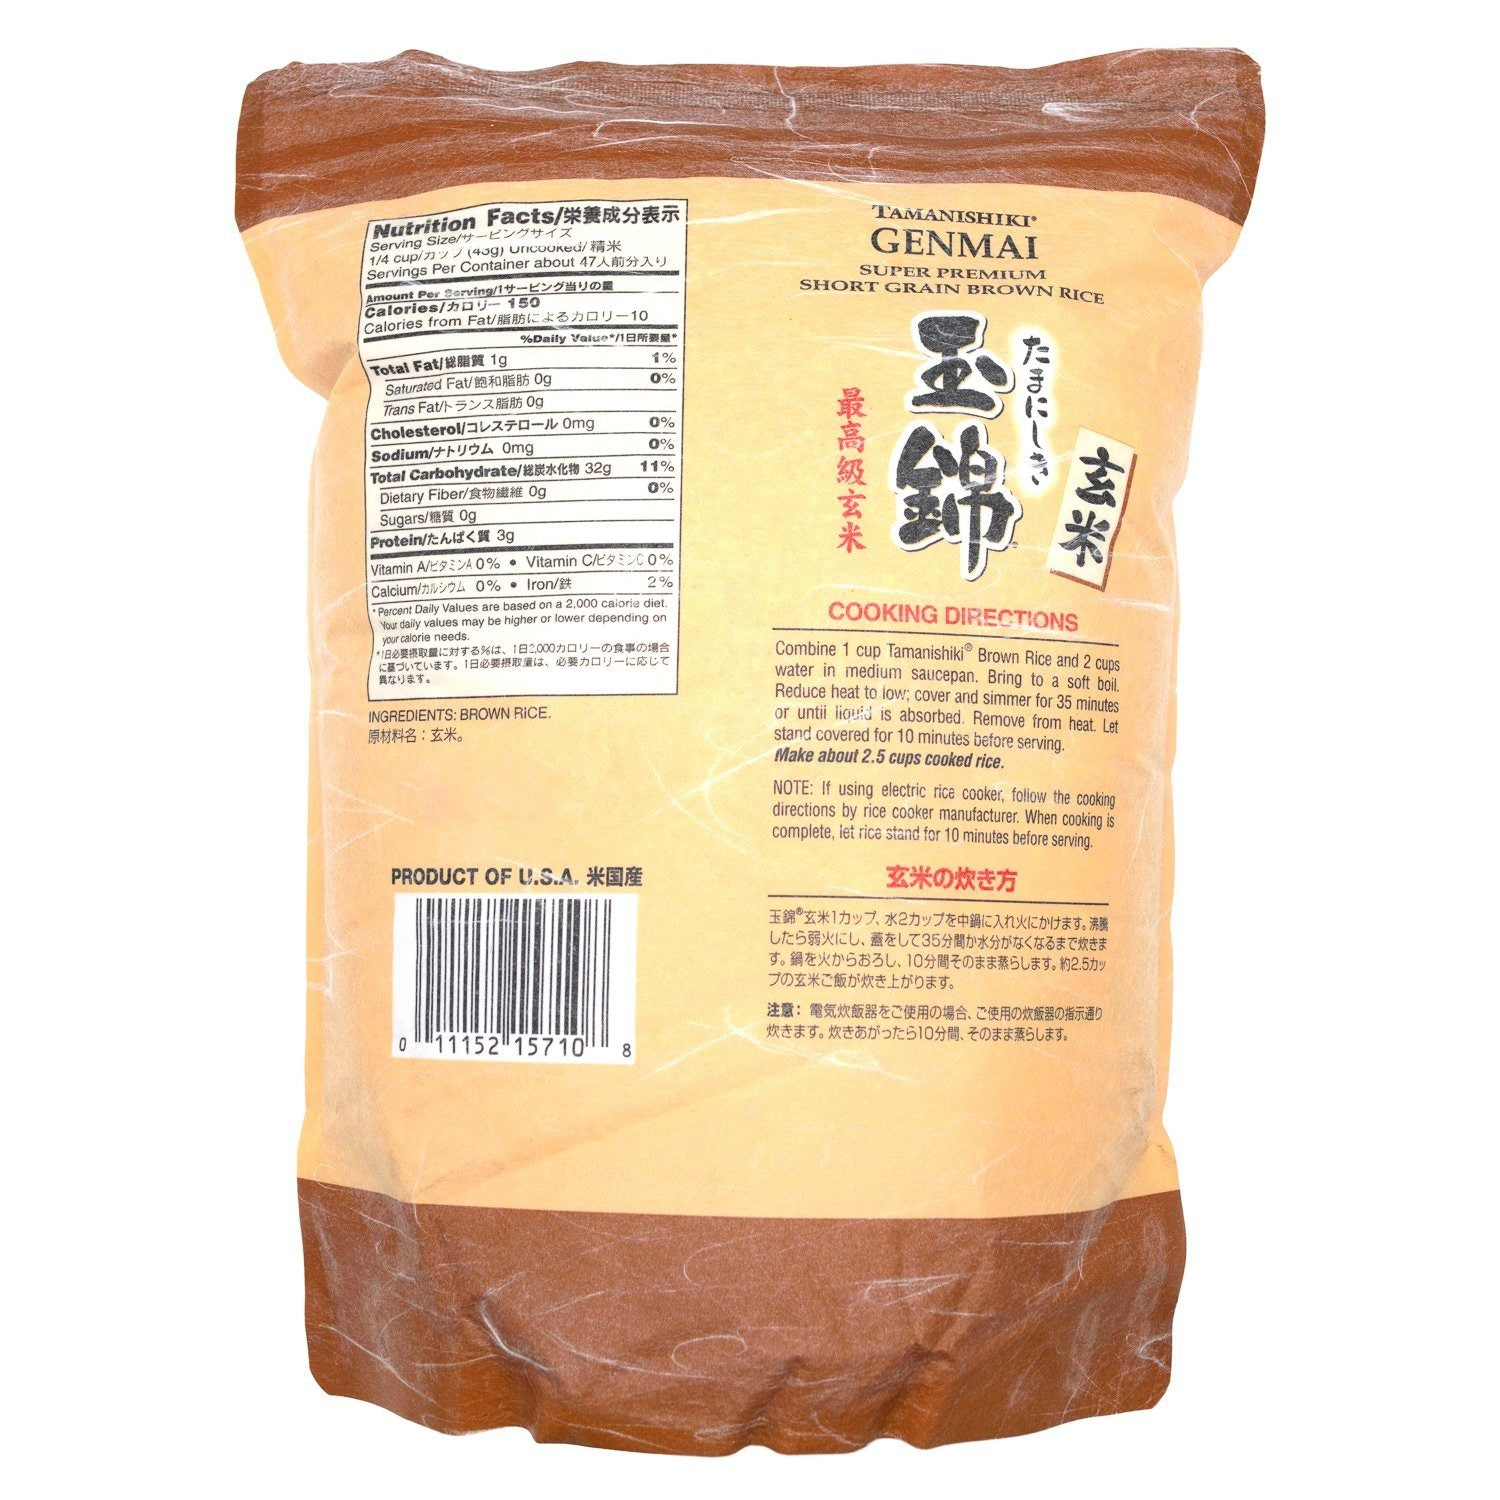 Tamanishiki Super Premium Short Grain Rice Tamanishiki